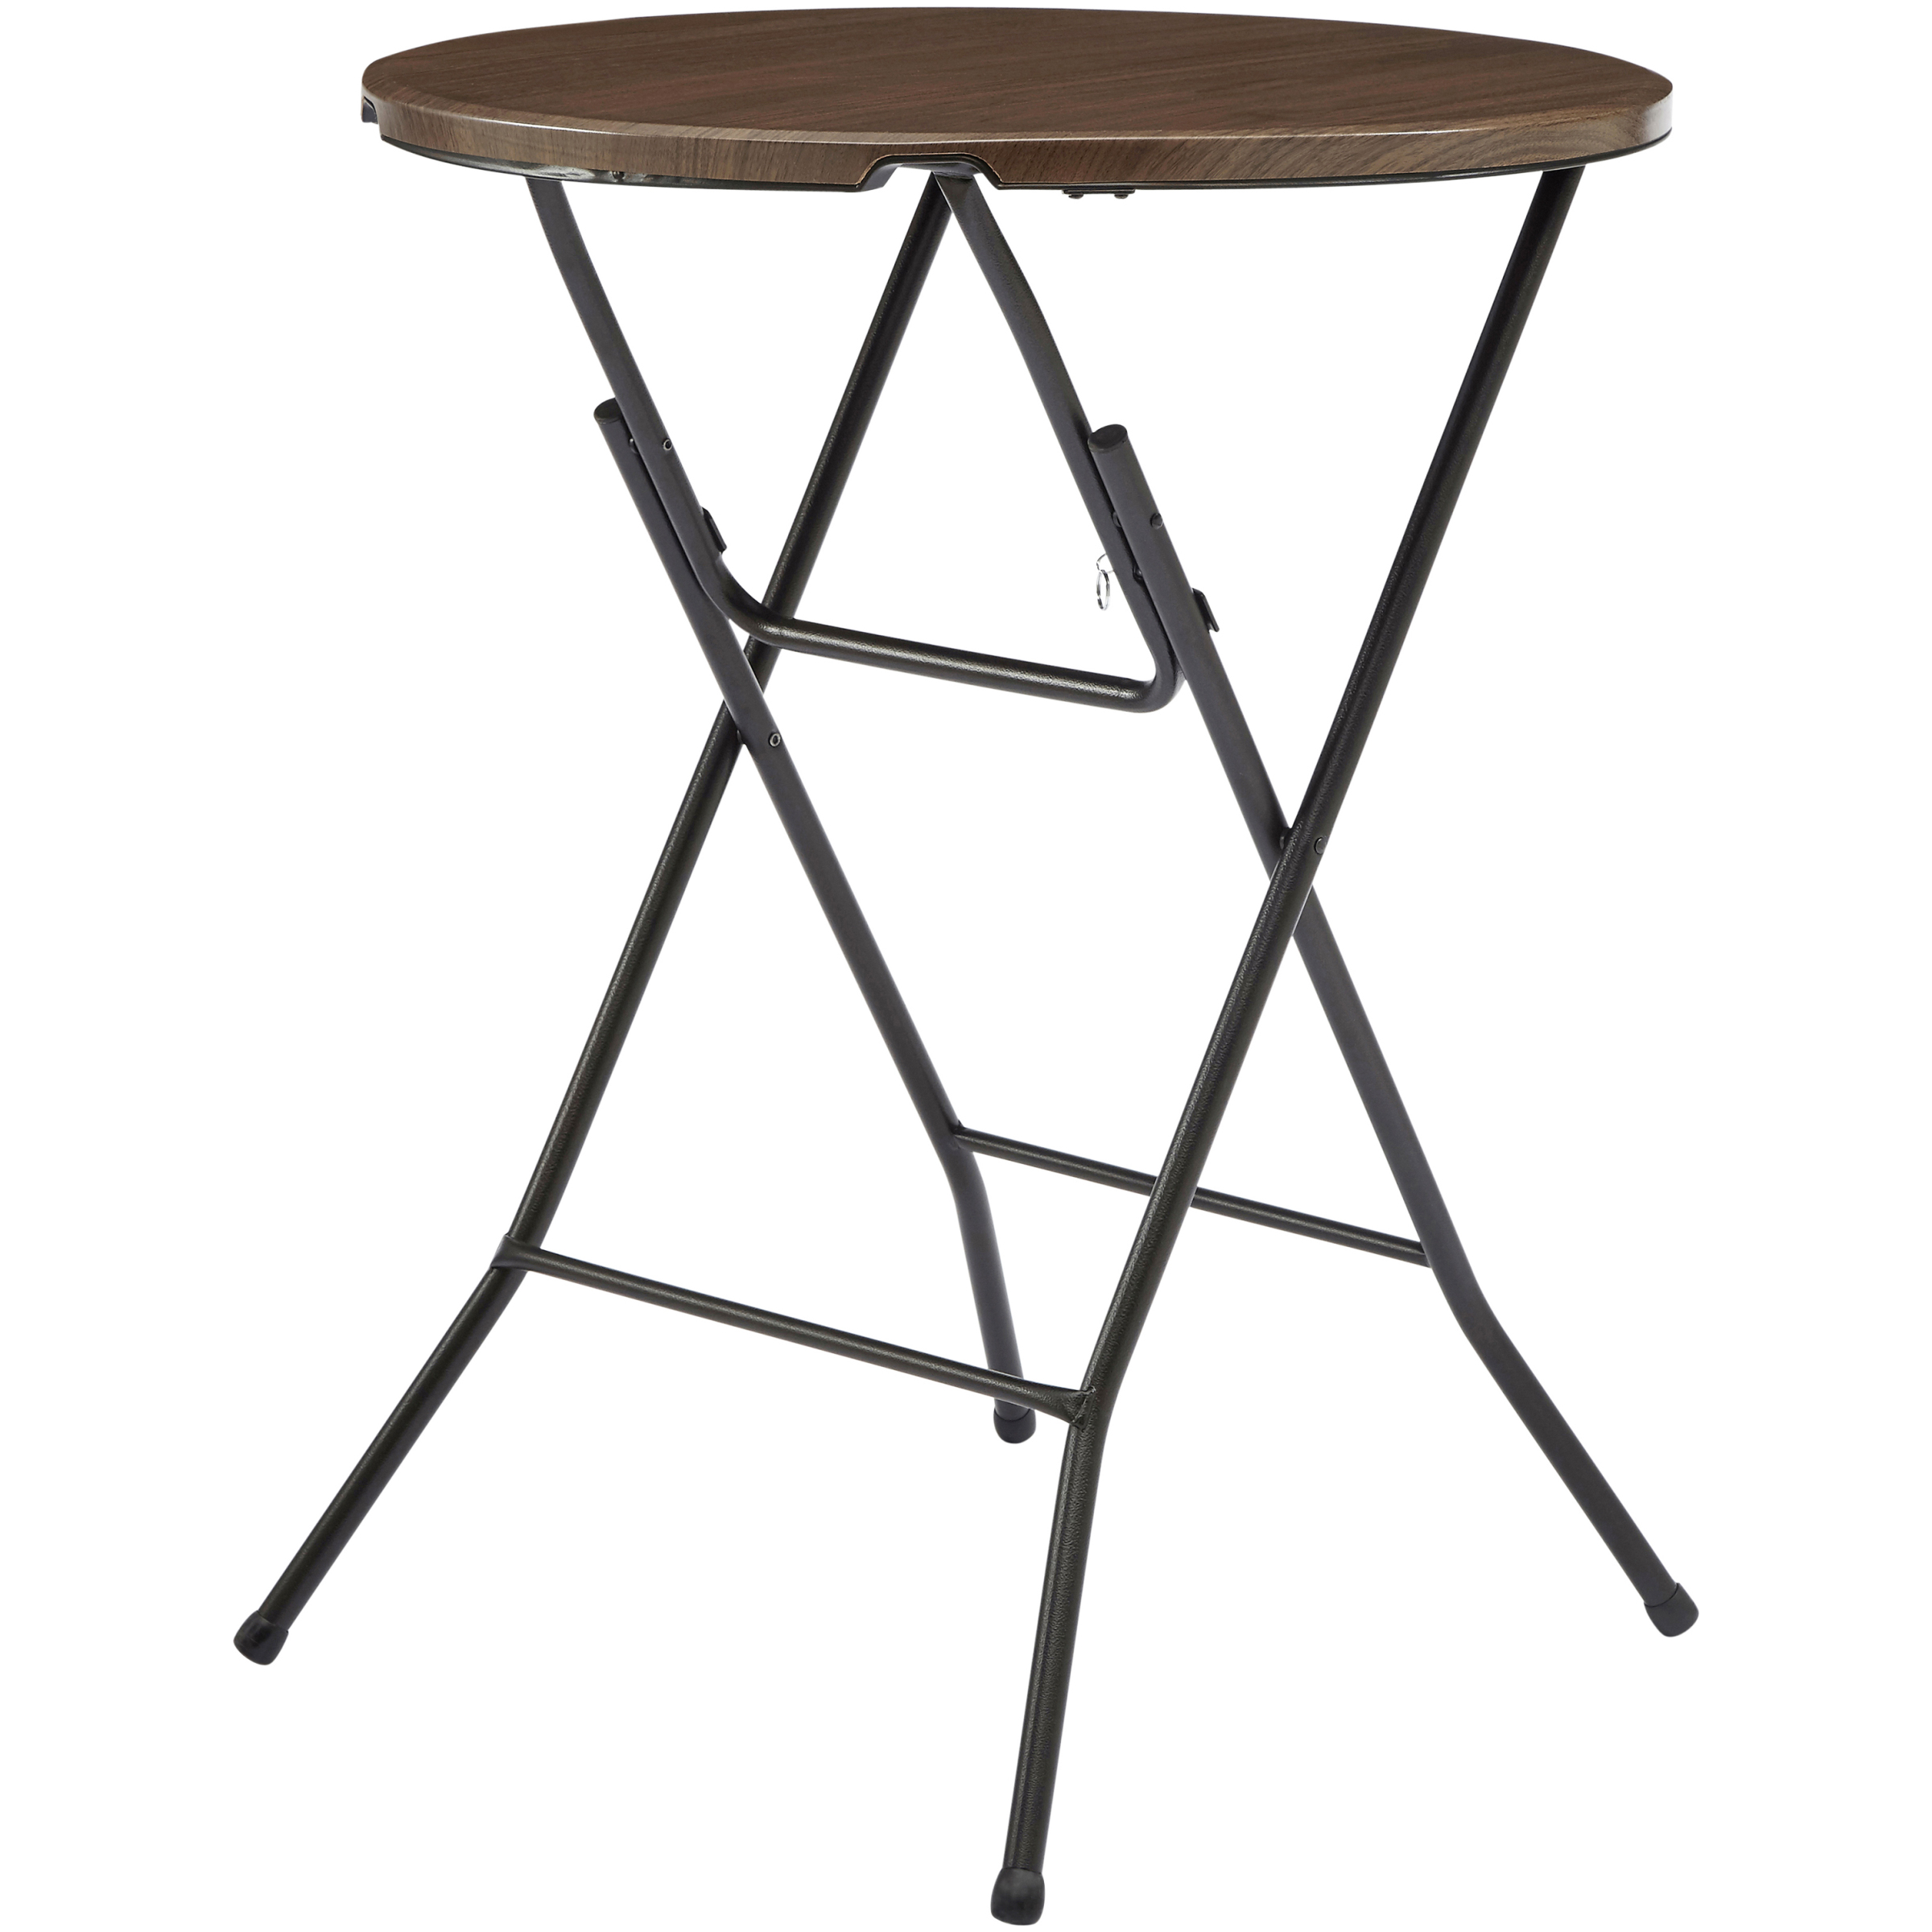 mainstays round high top folding table walnut accent marble rechargeable battery powered lamps side silver black lamp keter drinks cooler west elm entryway best patio umbrella